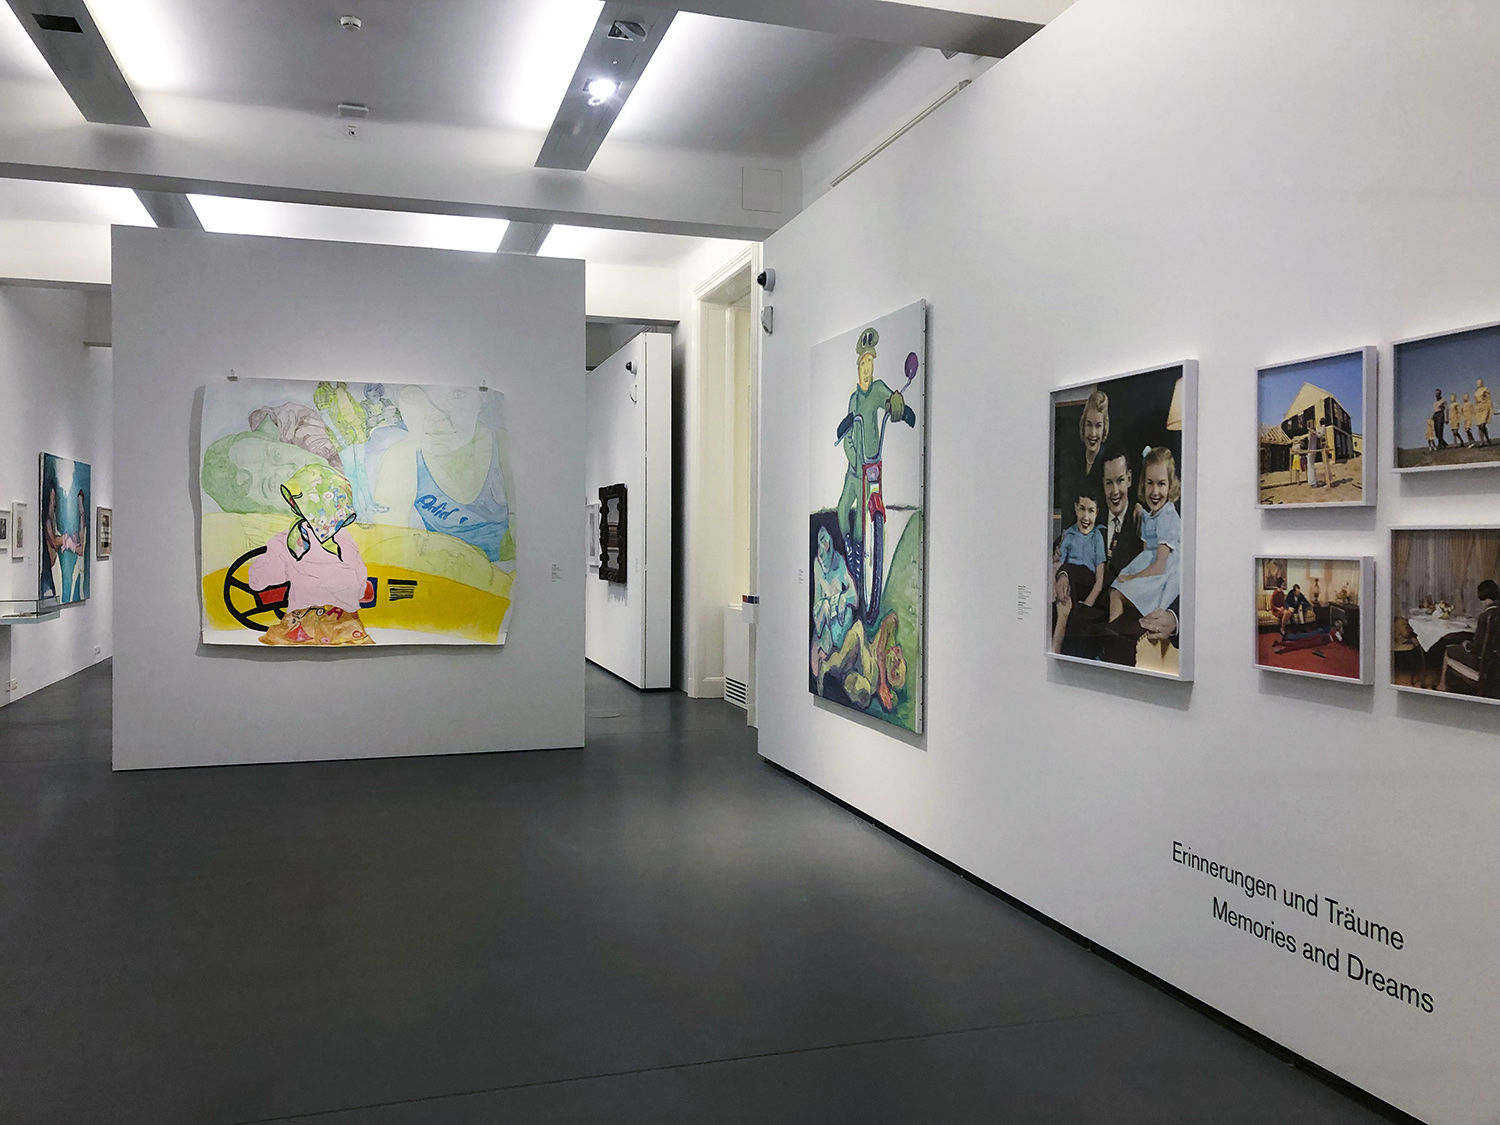 Installation view (photo by Uli Aigner)